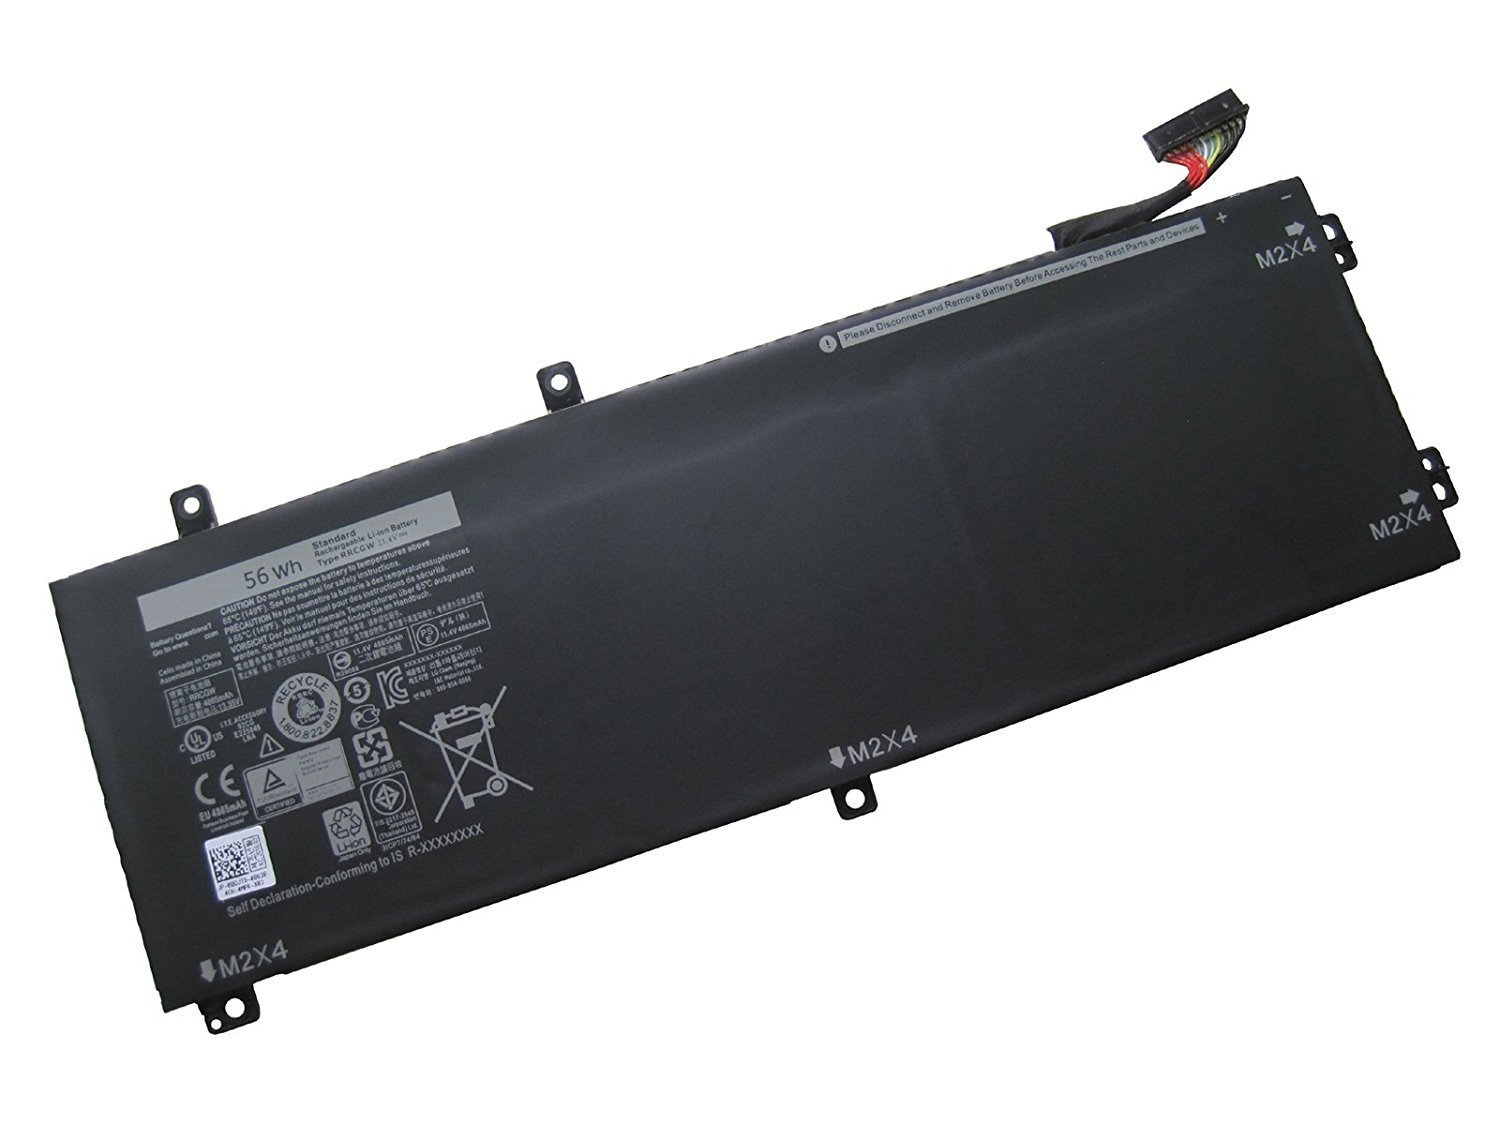 FLIW RRCGW Replacement Battery Compatible with Dell XPS 15 9550 Dell Precision 5510 RRCGW M7R96 62MJV (11.4V 56Wh)